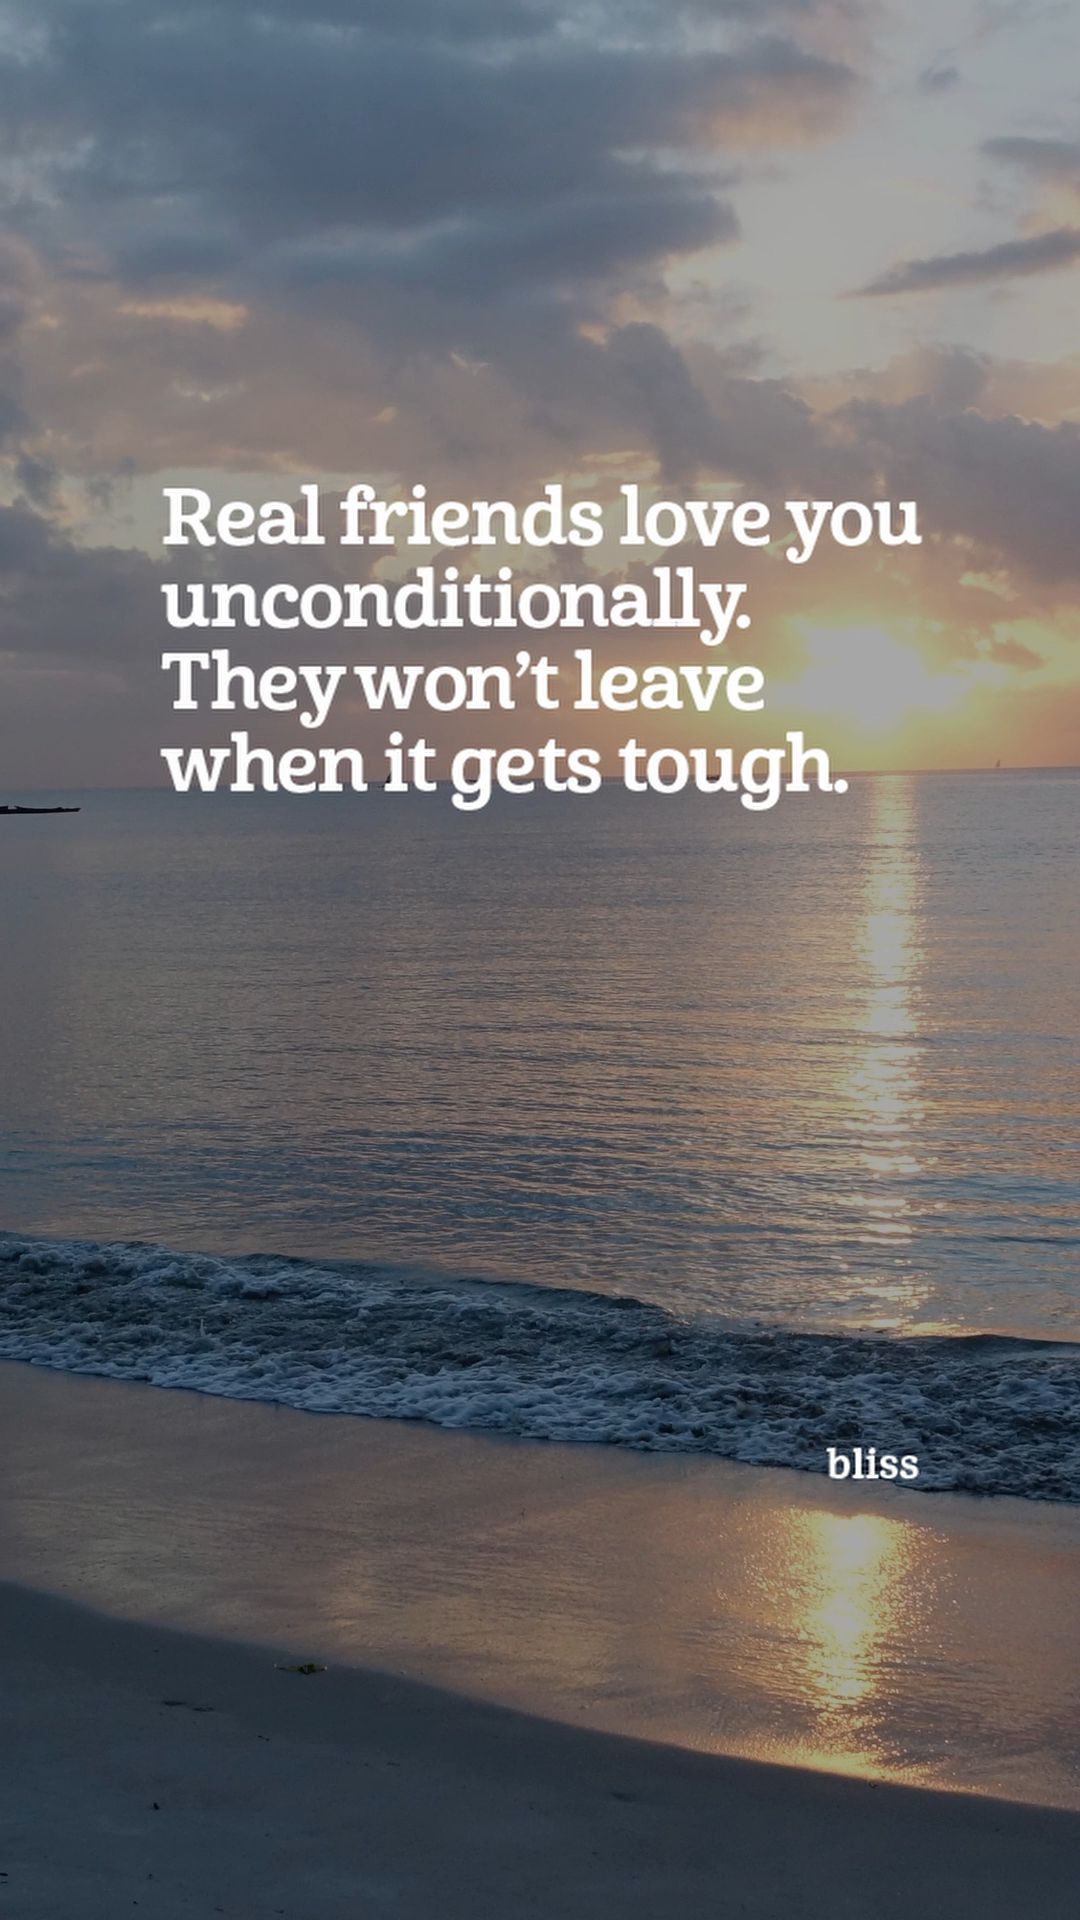 Real friends love you unconditionally. They won't leave when it gets tough.